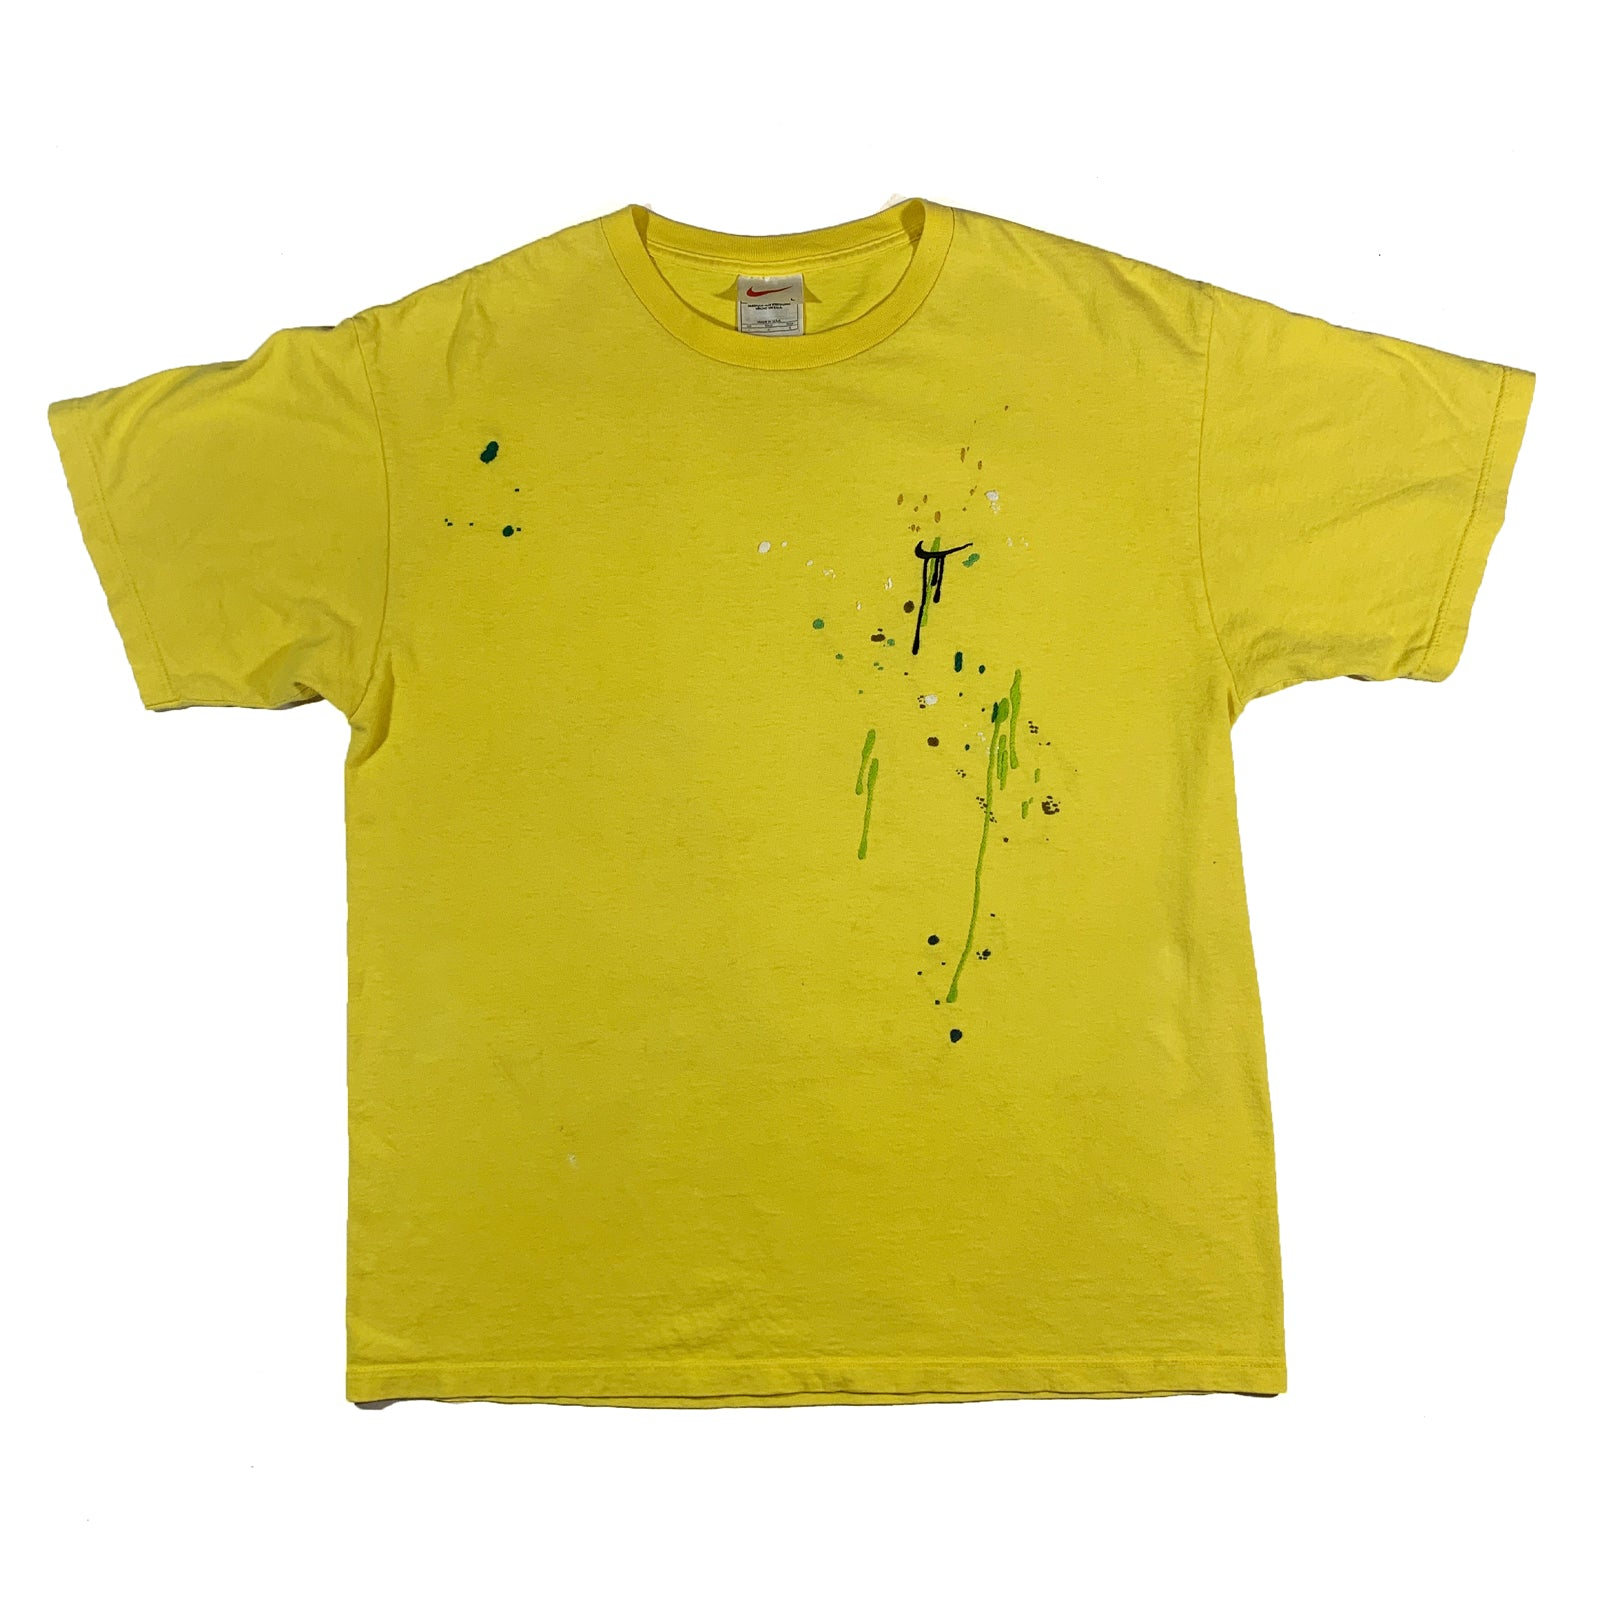 "BANDULU "" LEMON CELLO "" VINTAGE NIKE TEE L"